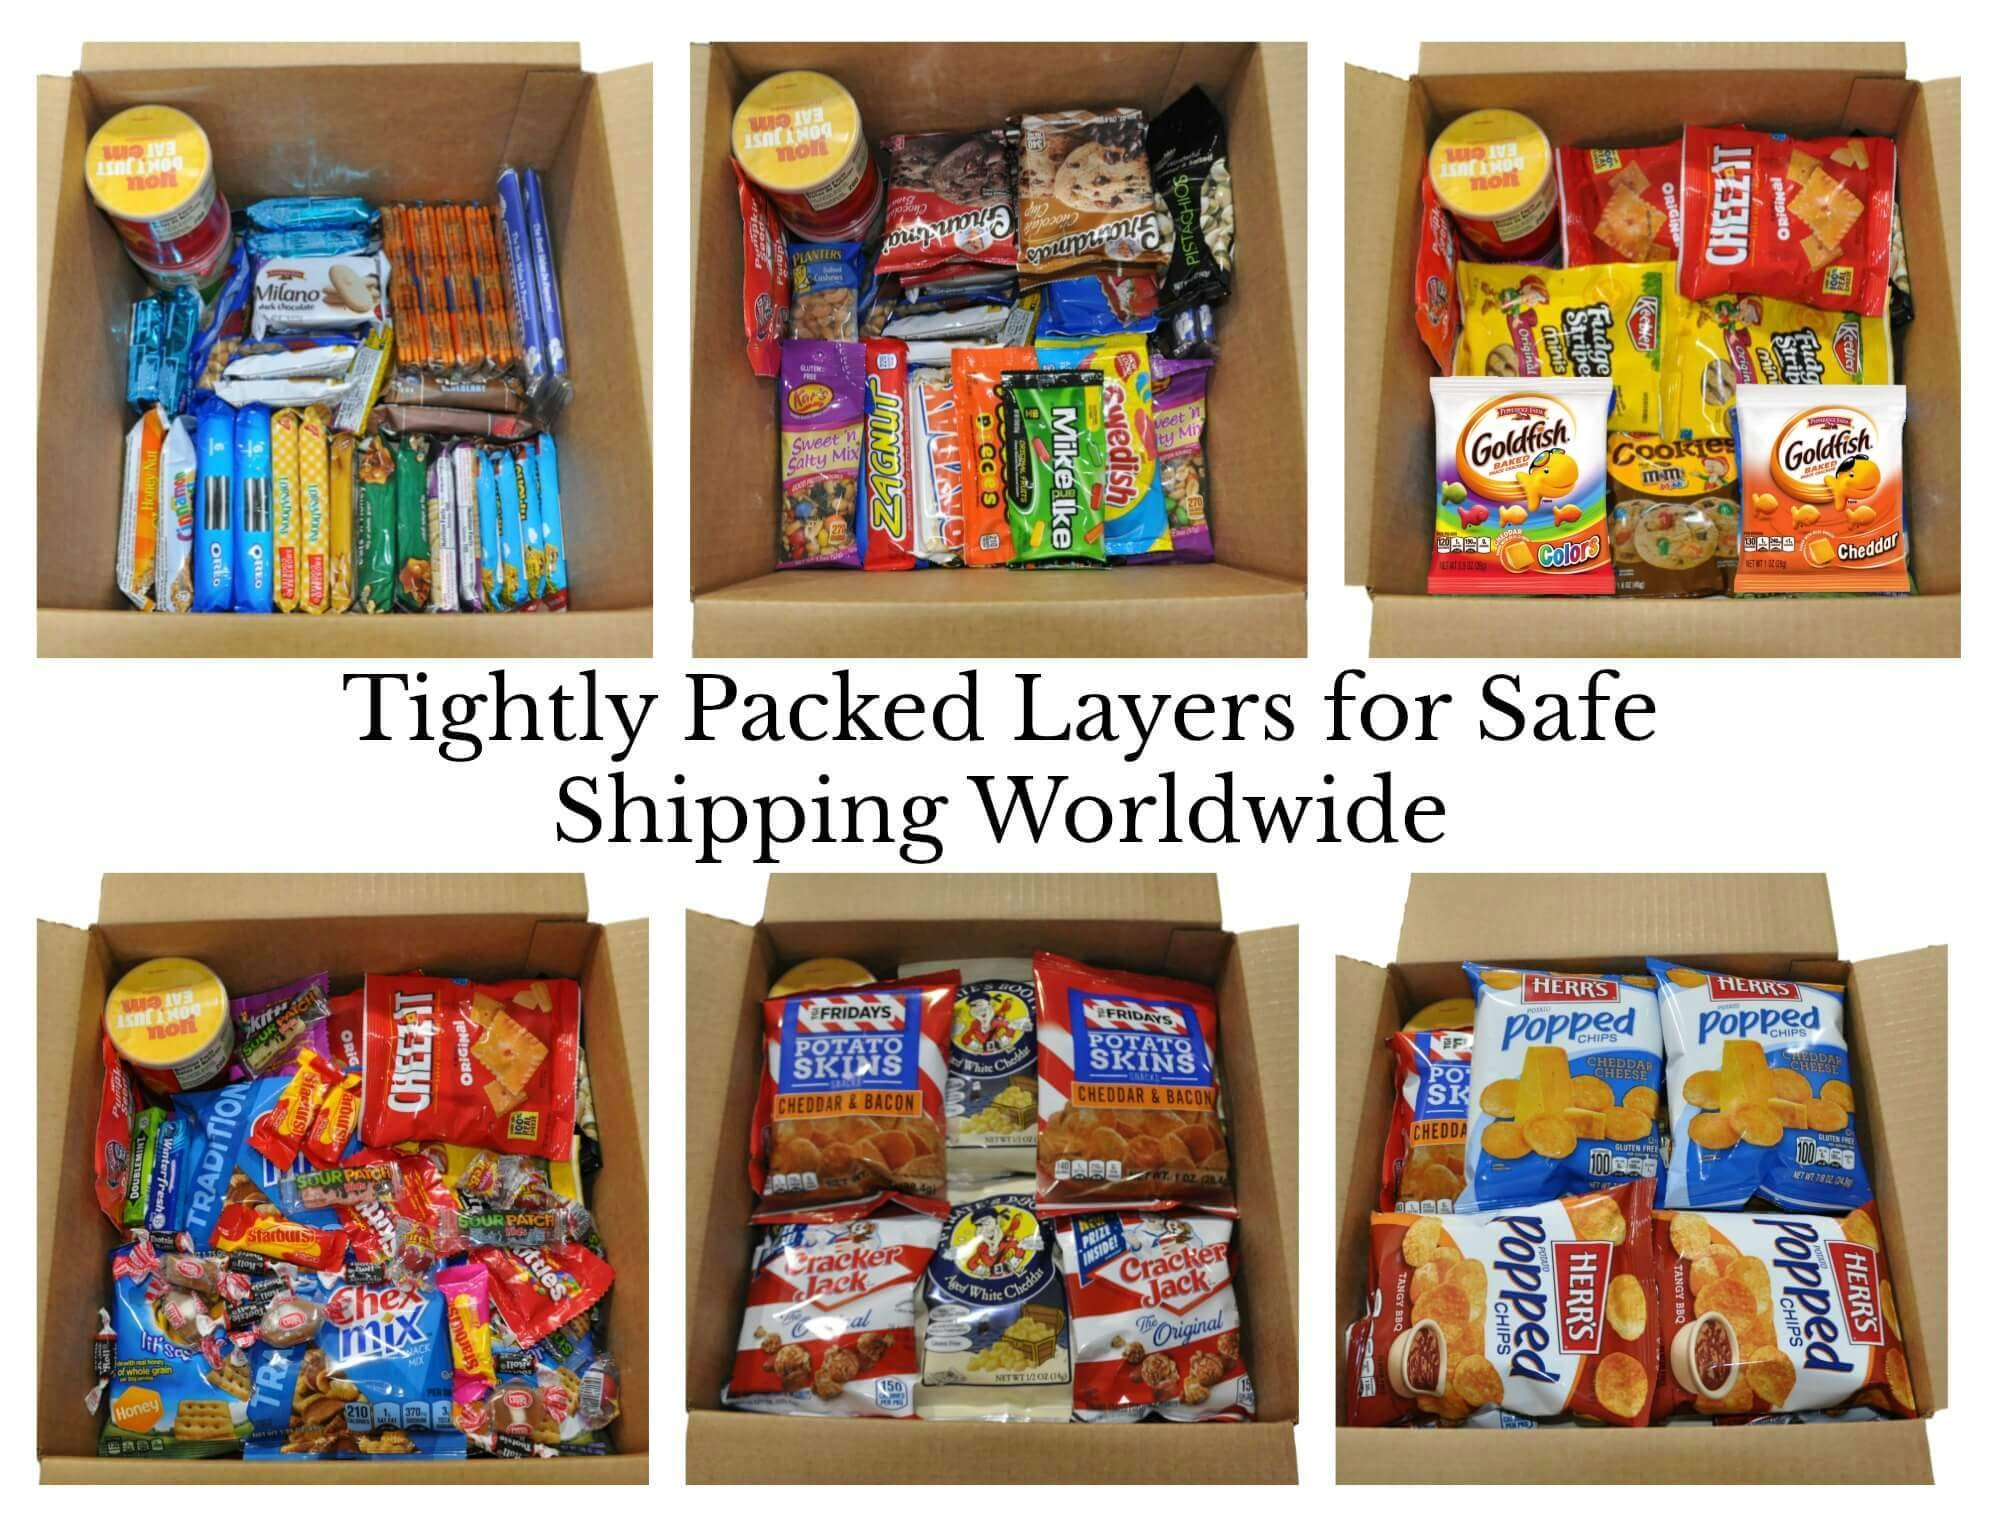 Deluxe 130 Count Snack Food Variety Pack | Office Snacks or School Lunchbox Snacks |10 Pounds of Sweet and Salty Options by Perpetual Motion Enterprises, Inc. (Image #3)